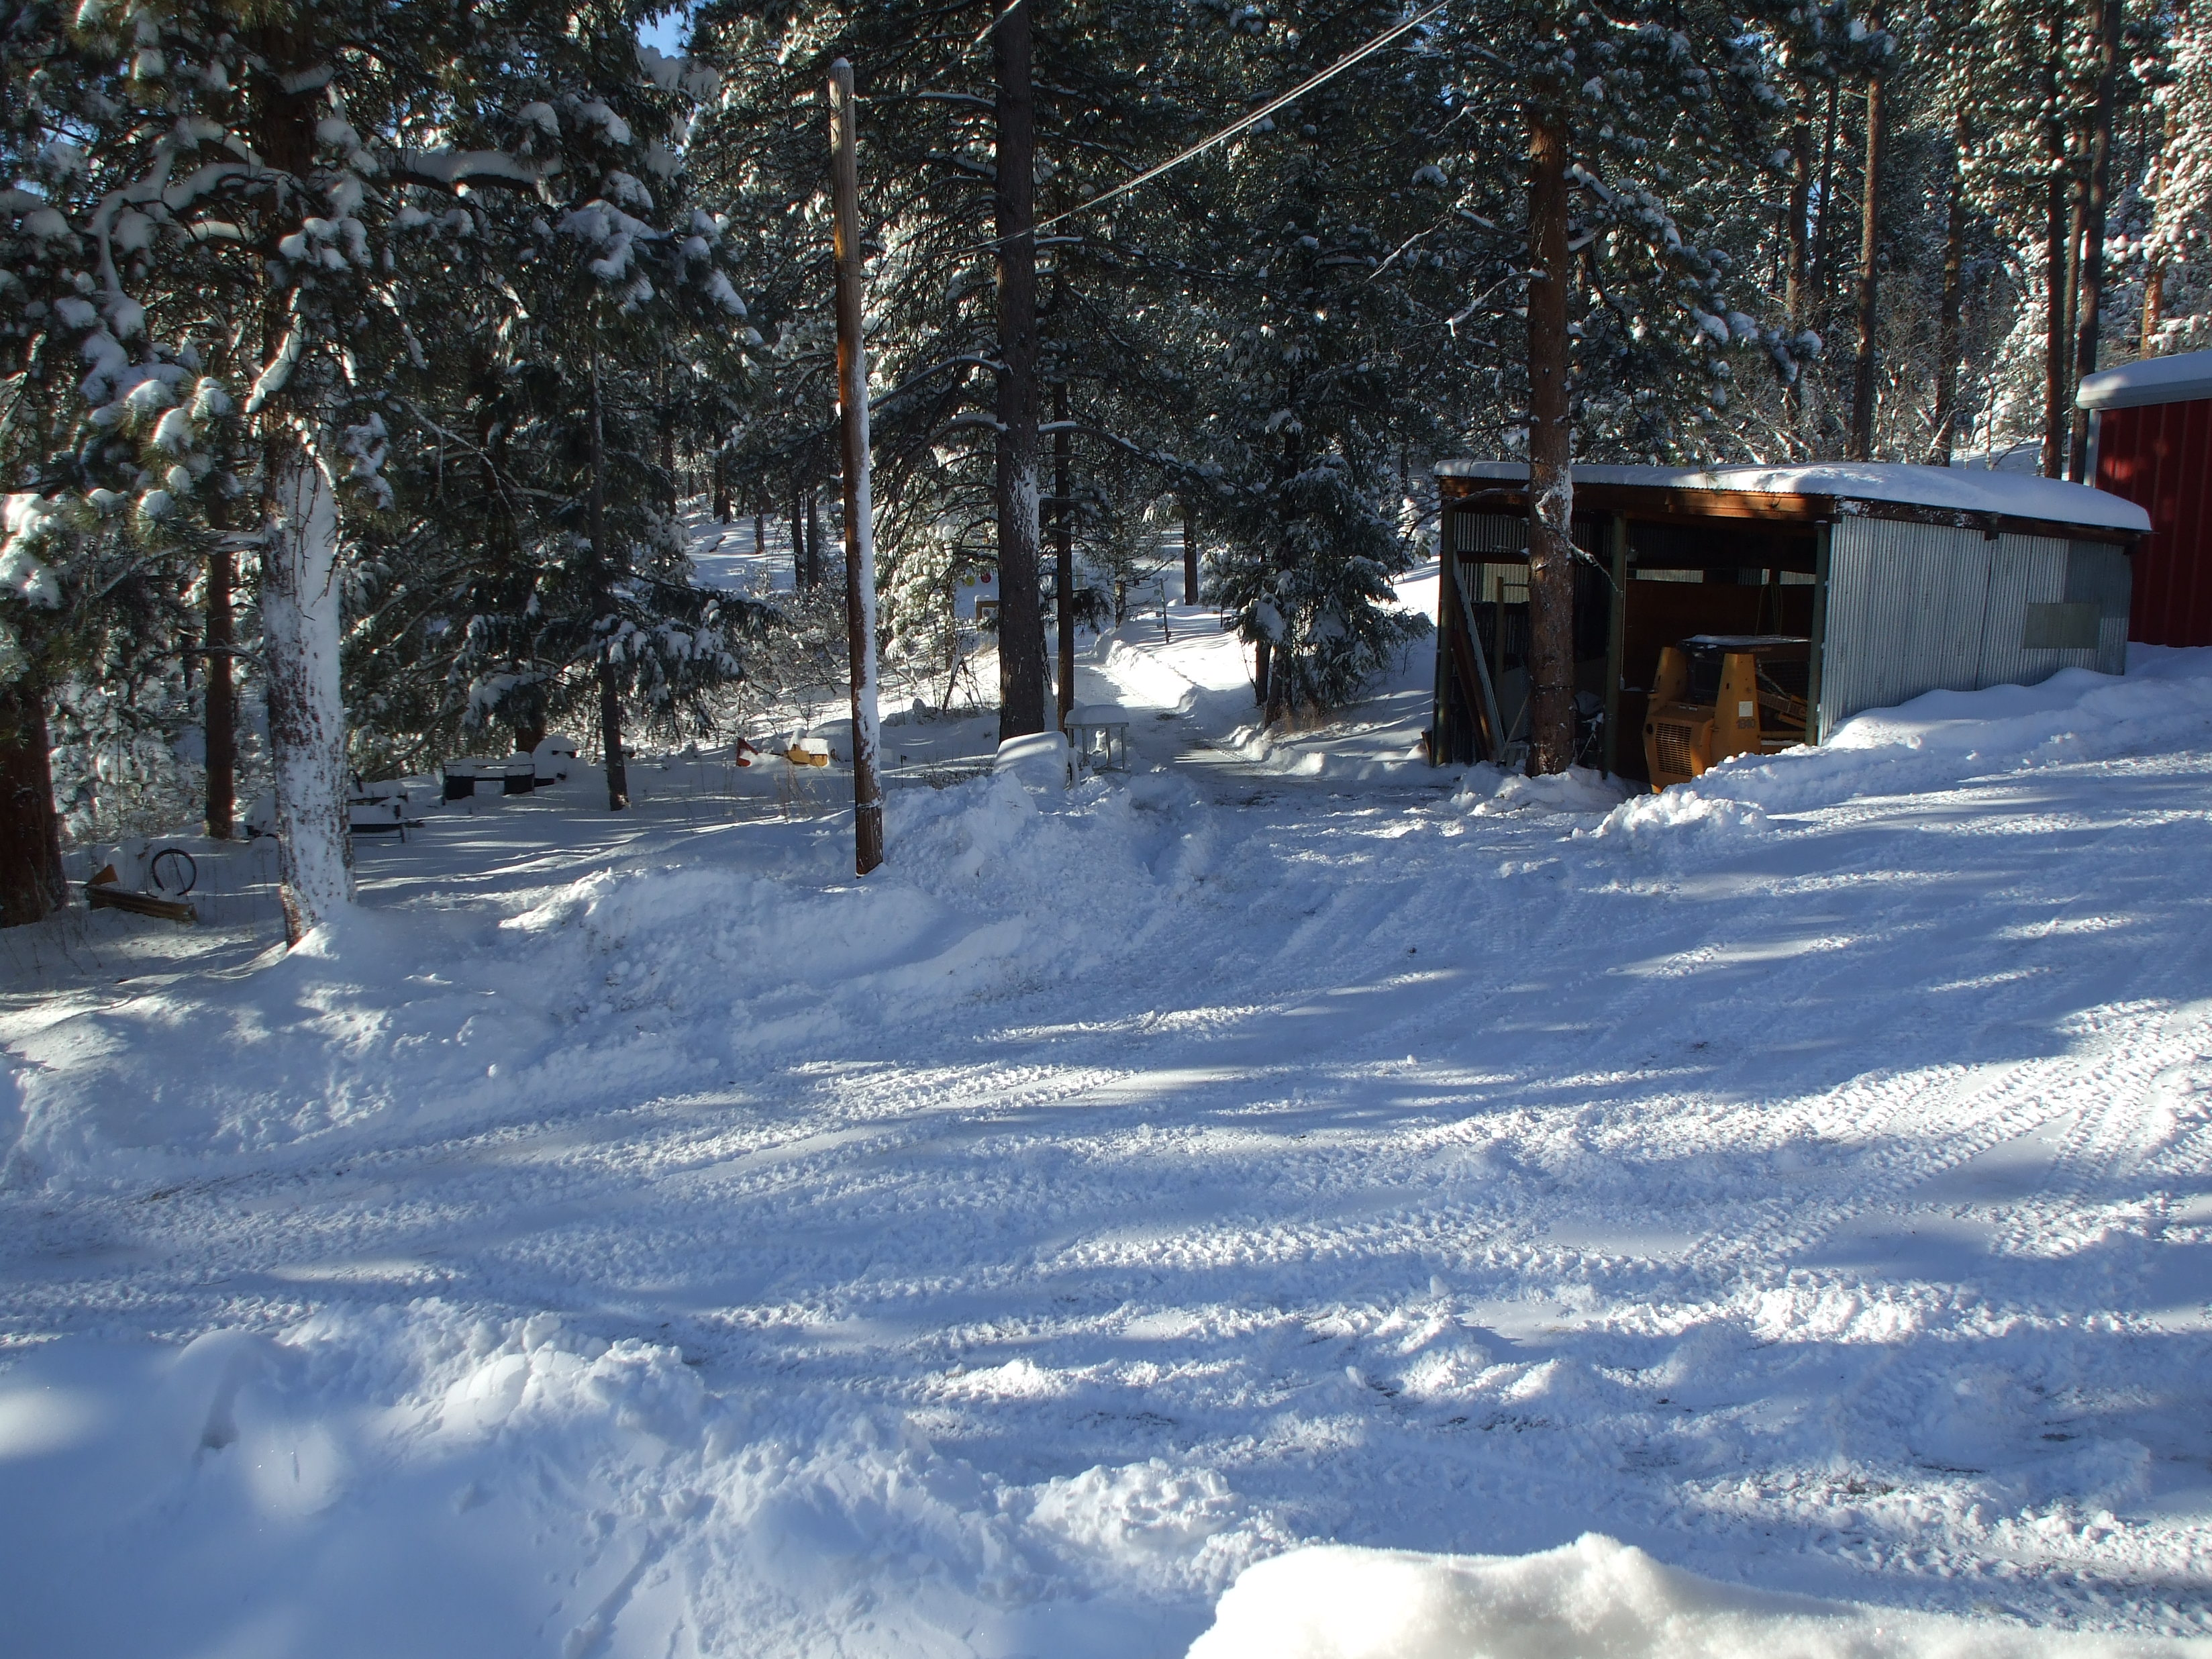 Click image for larger version  Name:snow 12 15 2015 002.JPG Views:140 Size:1.80 MB ID:2143517